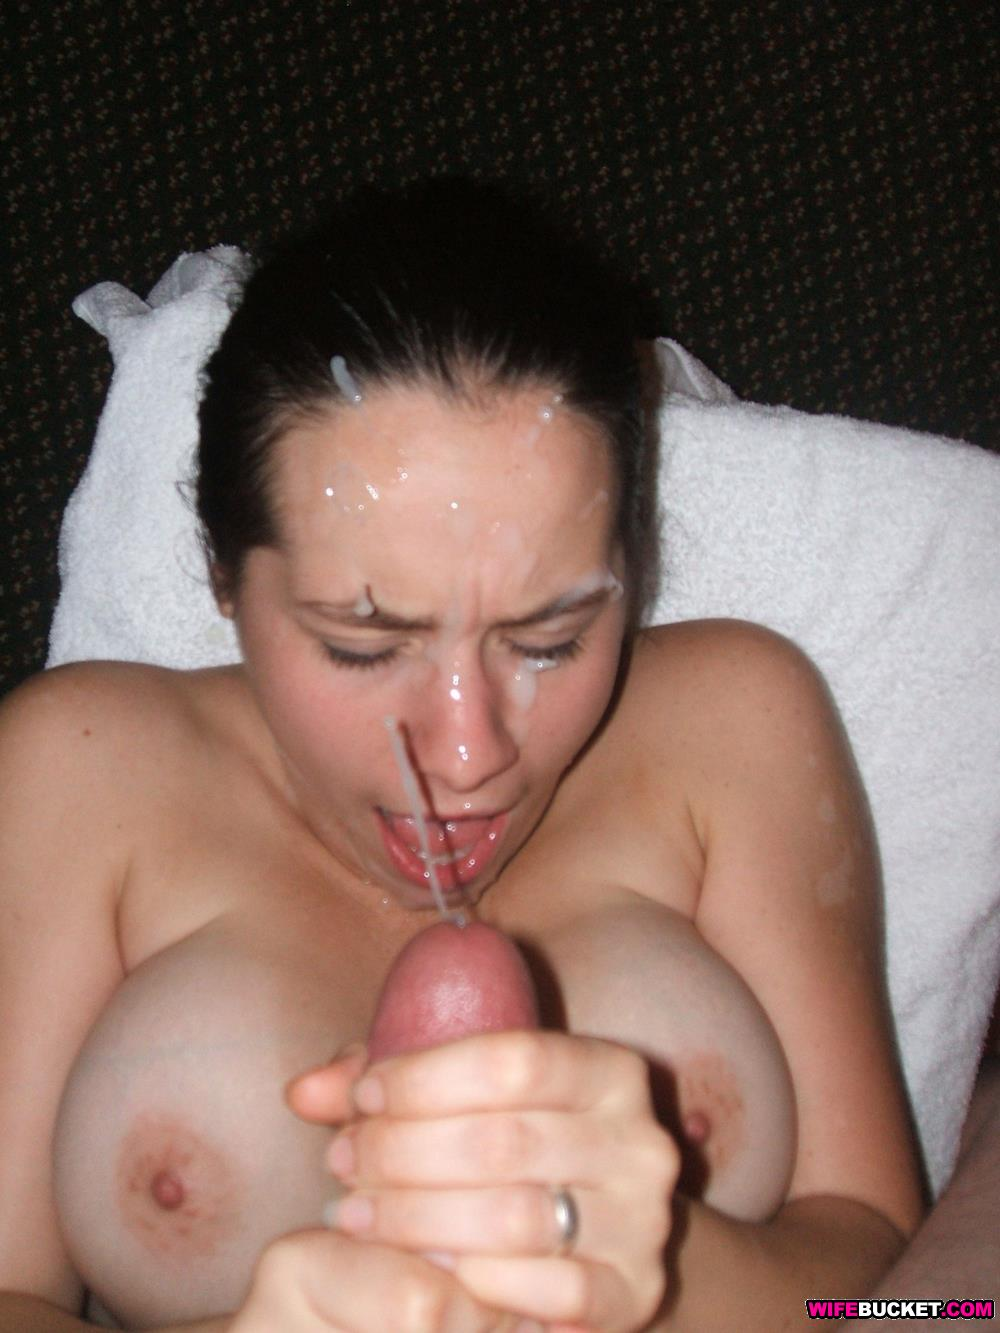 Amateur homemade latina facial